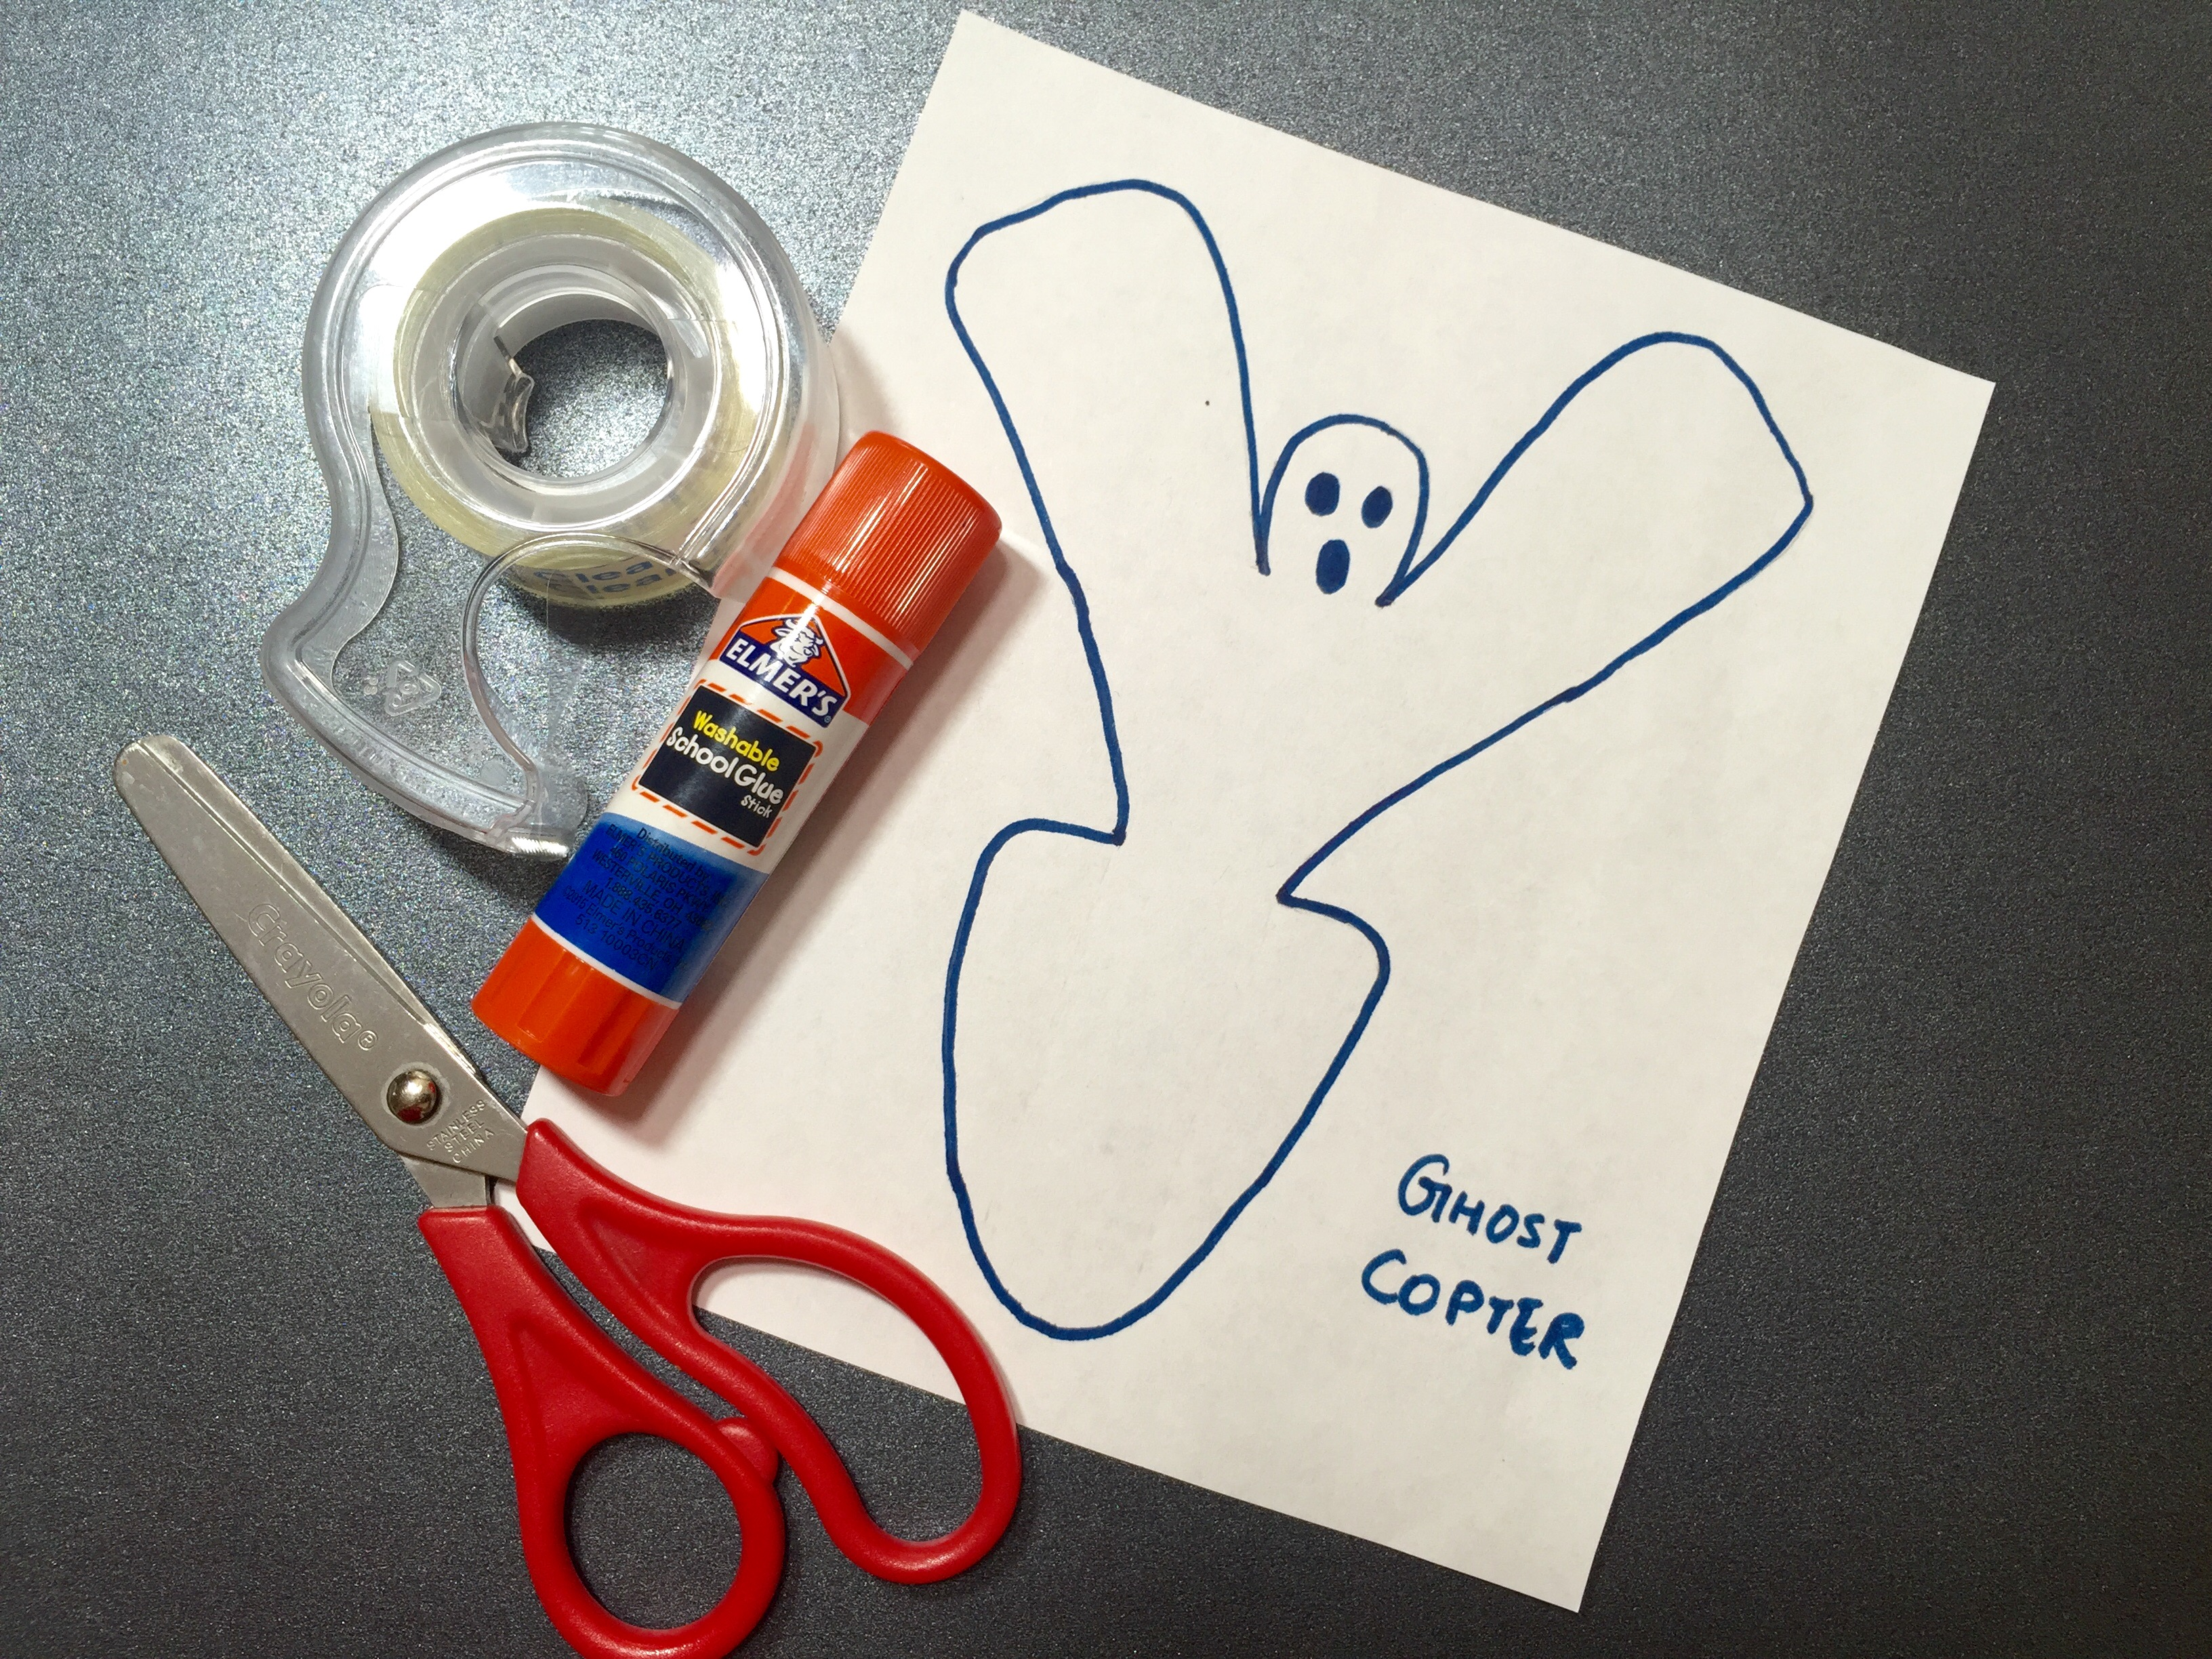 Spinning Ghost copter